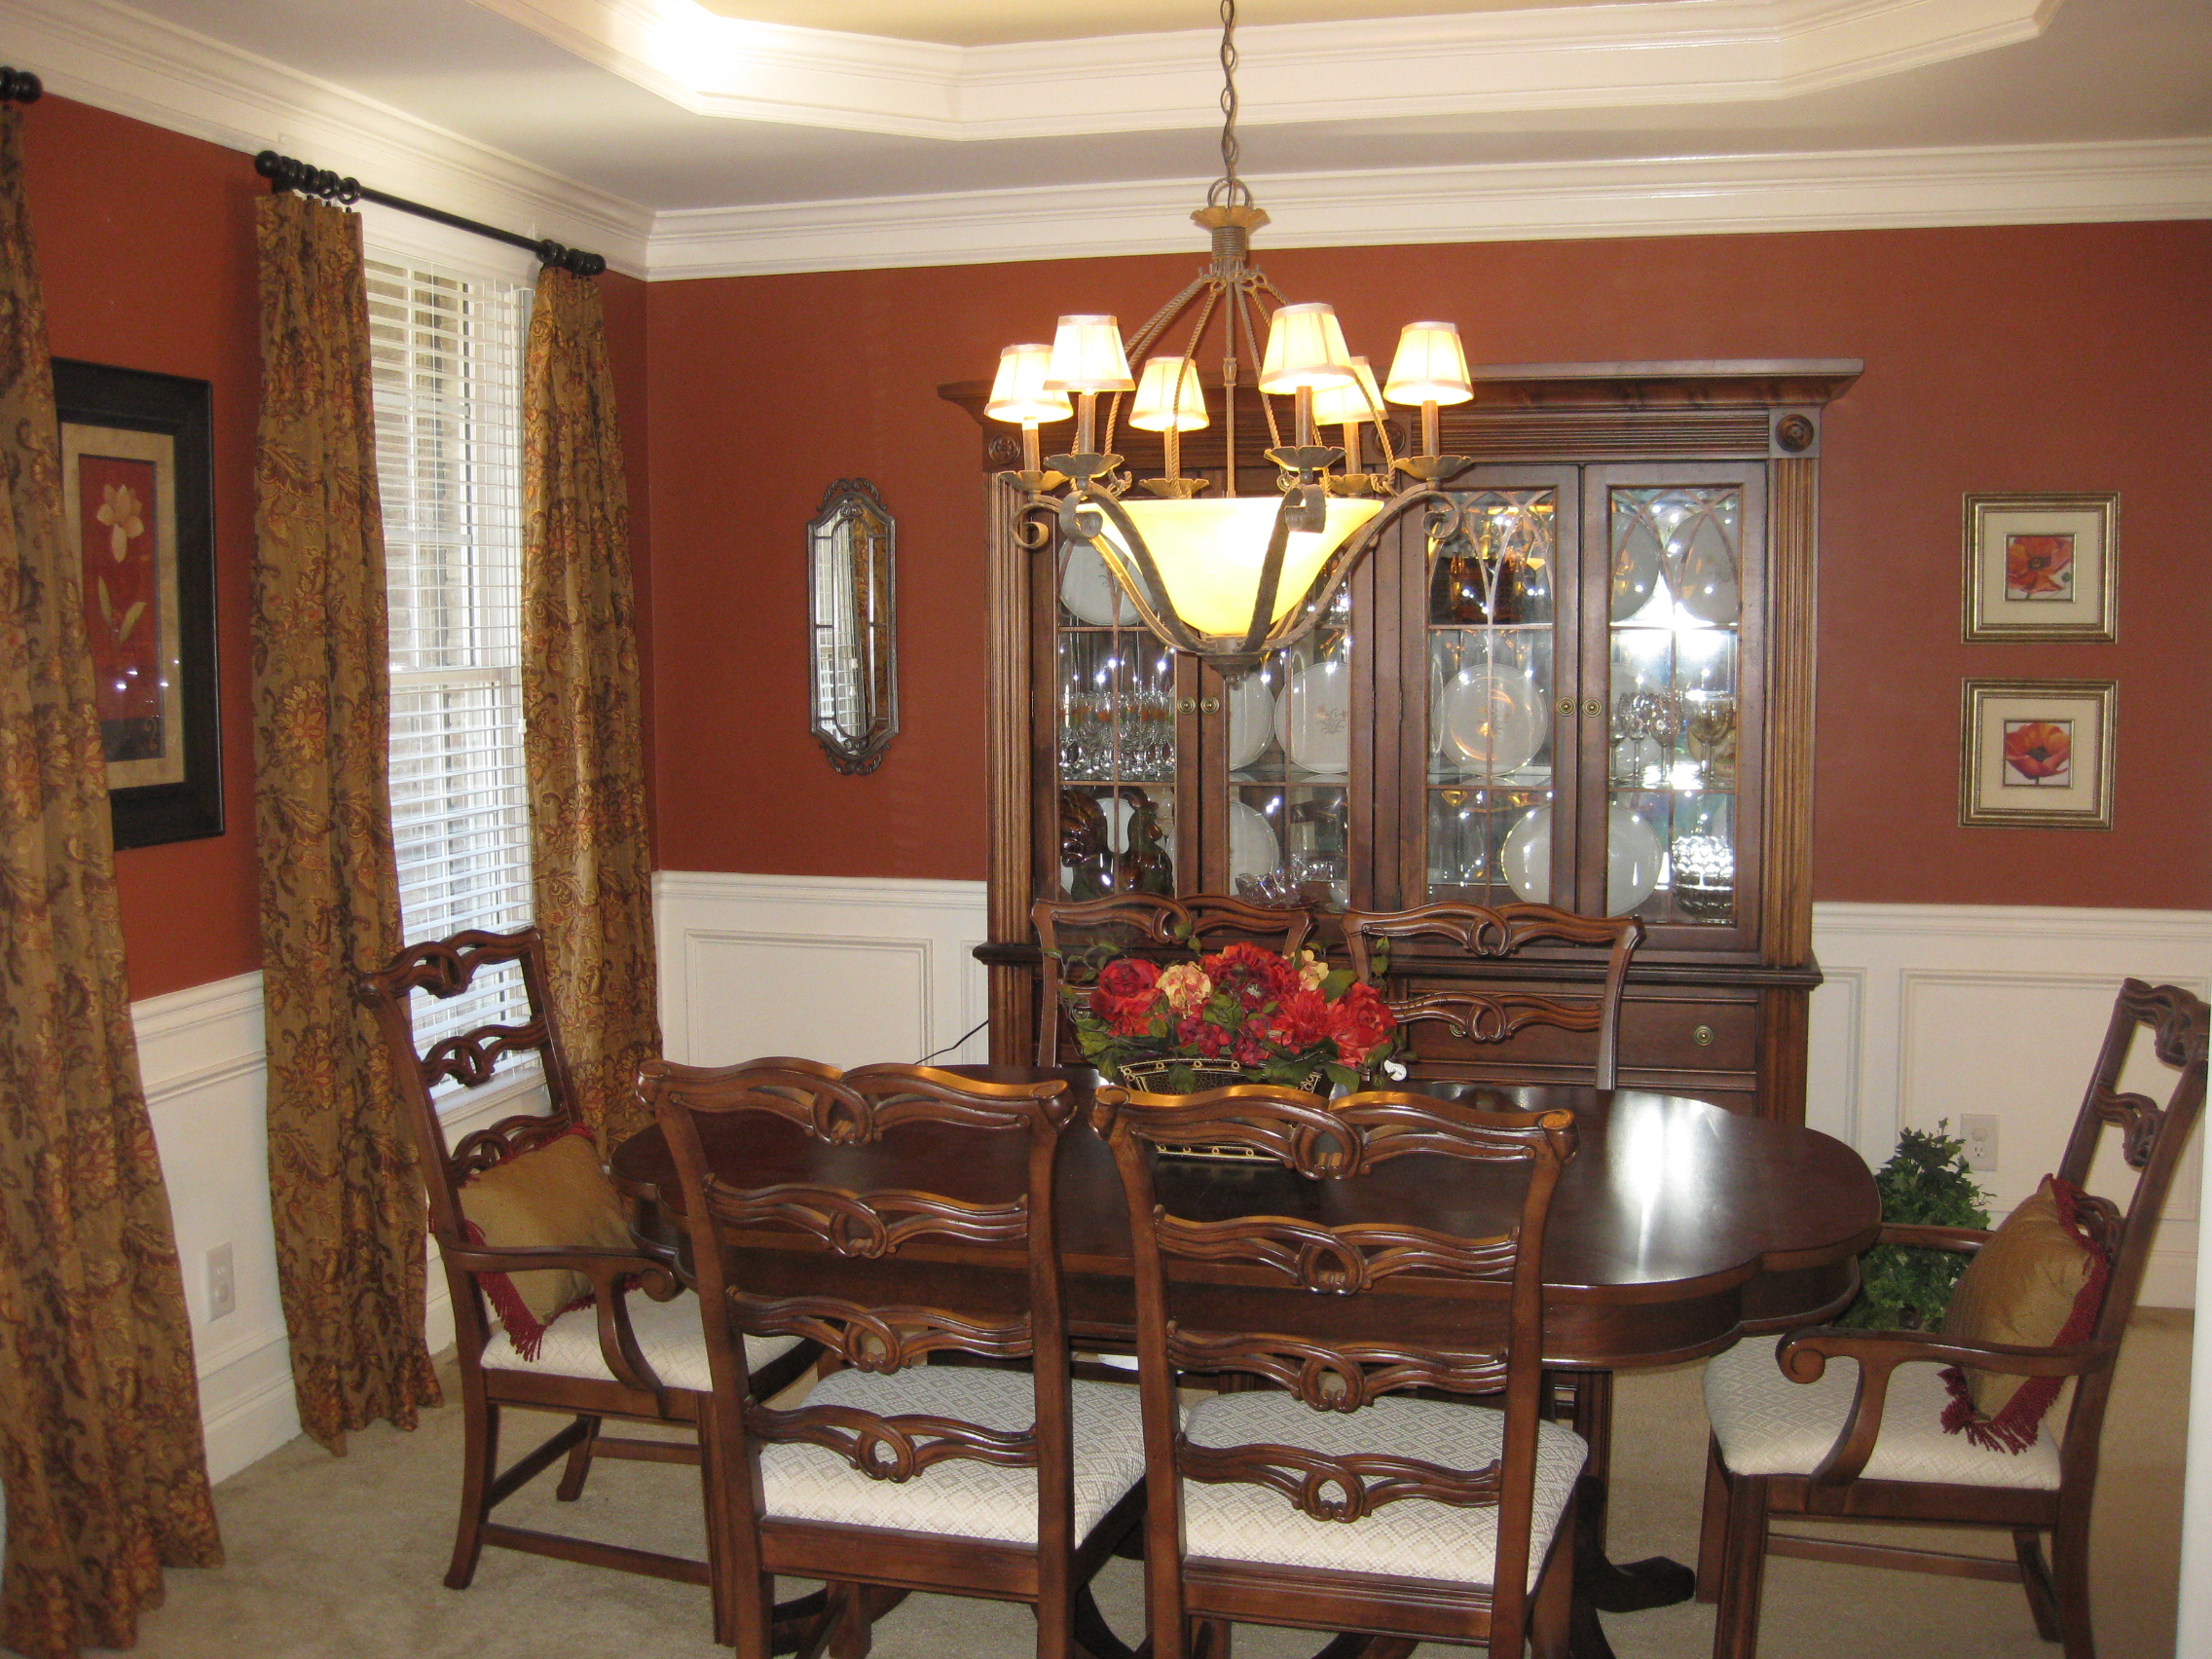 Traditional dining room decorating ideas 20 architecture for Dining room decor ideas 2015